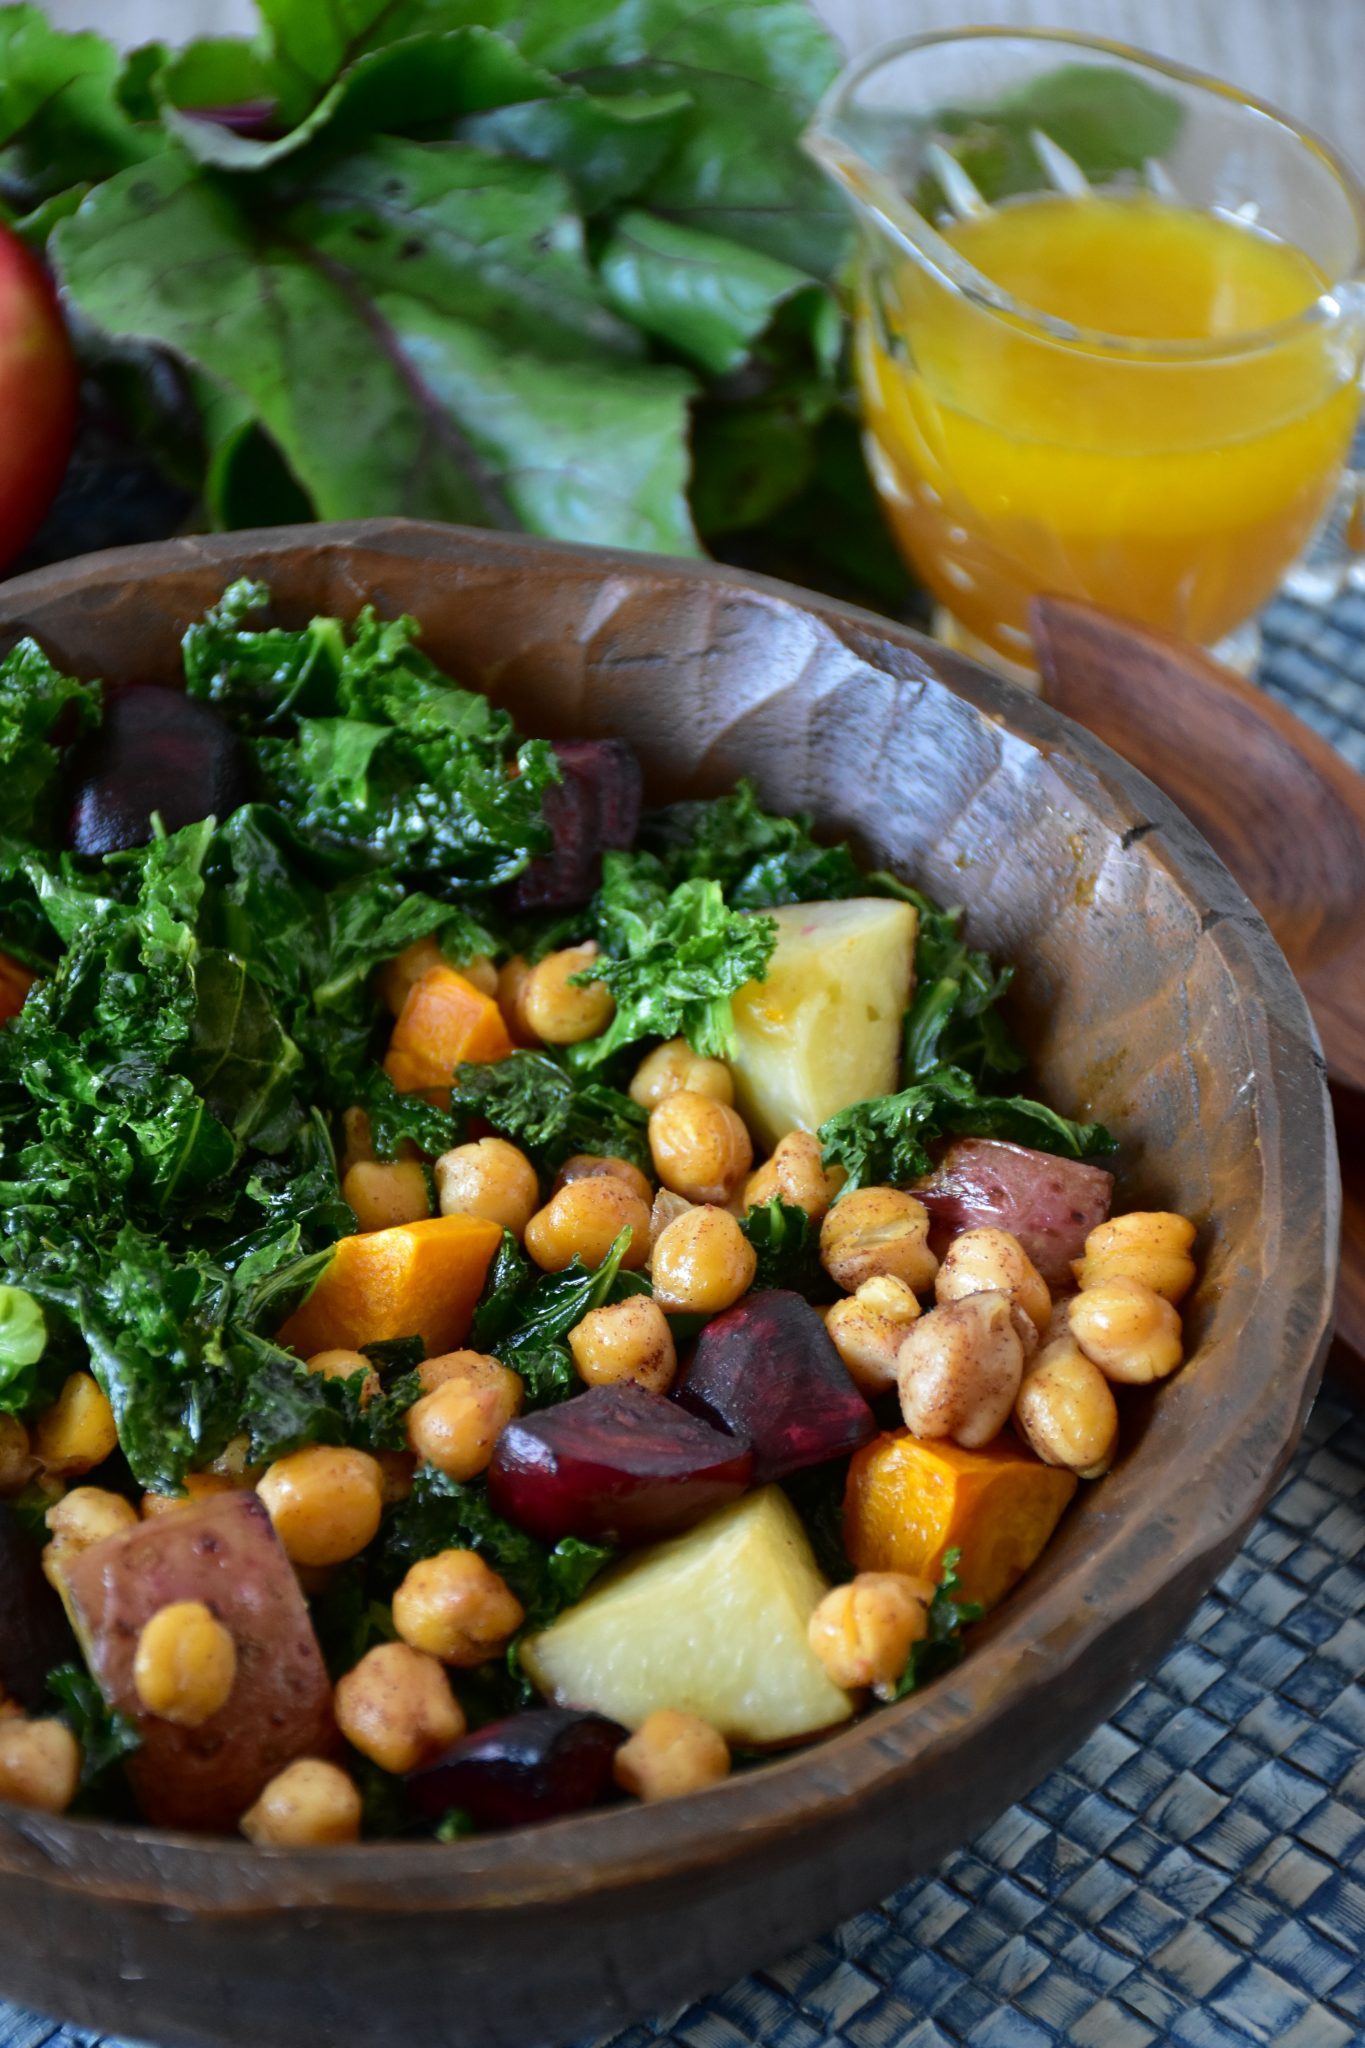 Kale salad in a wooden bowl with apple maple vinaigrette in the background.